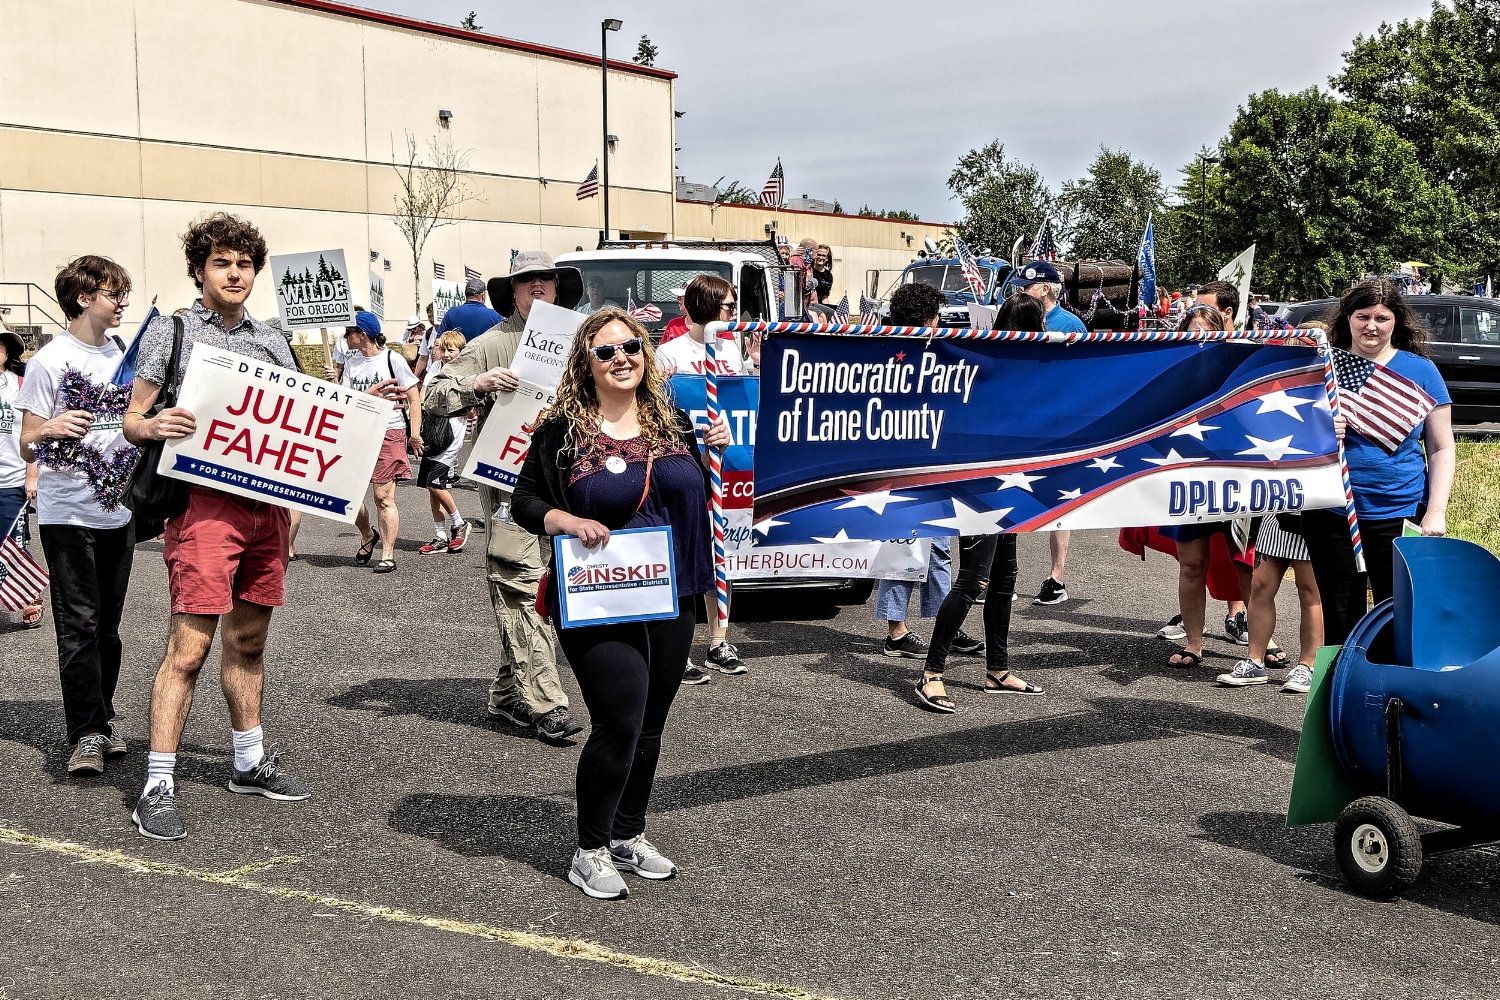 2018-726-Marty Campaign July4.jpg